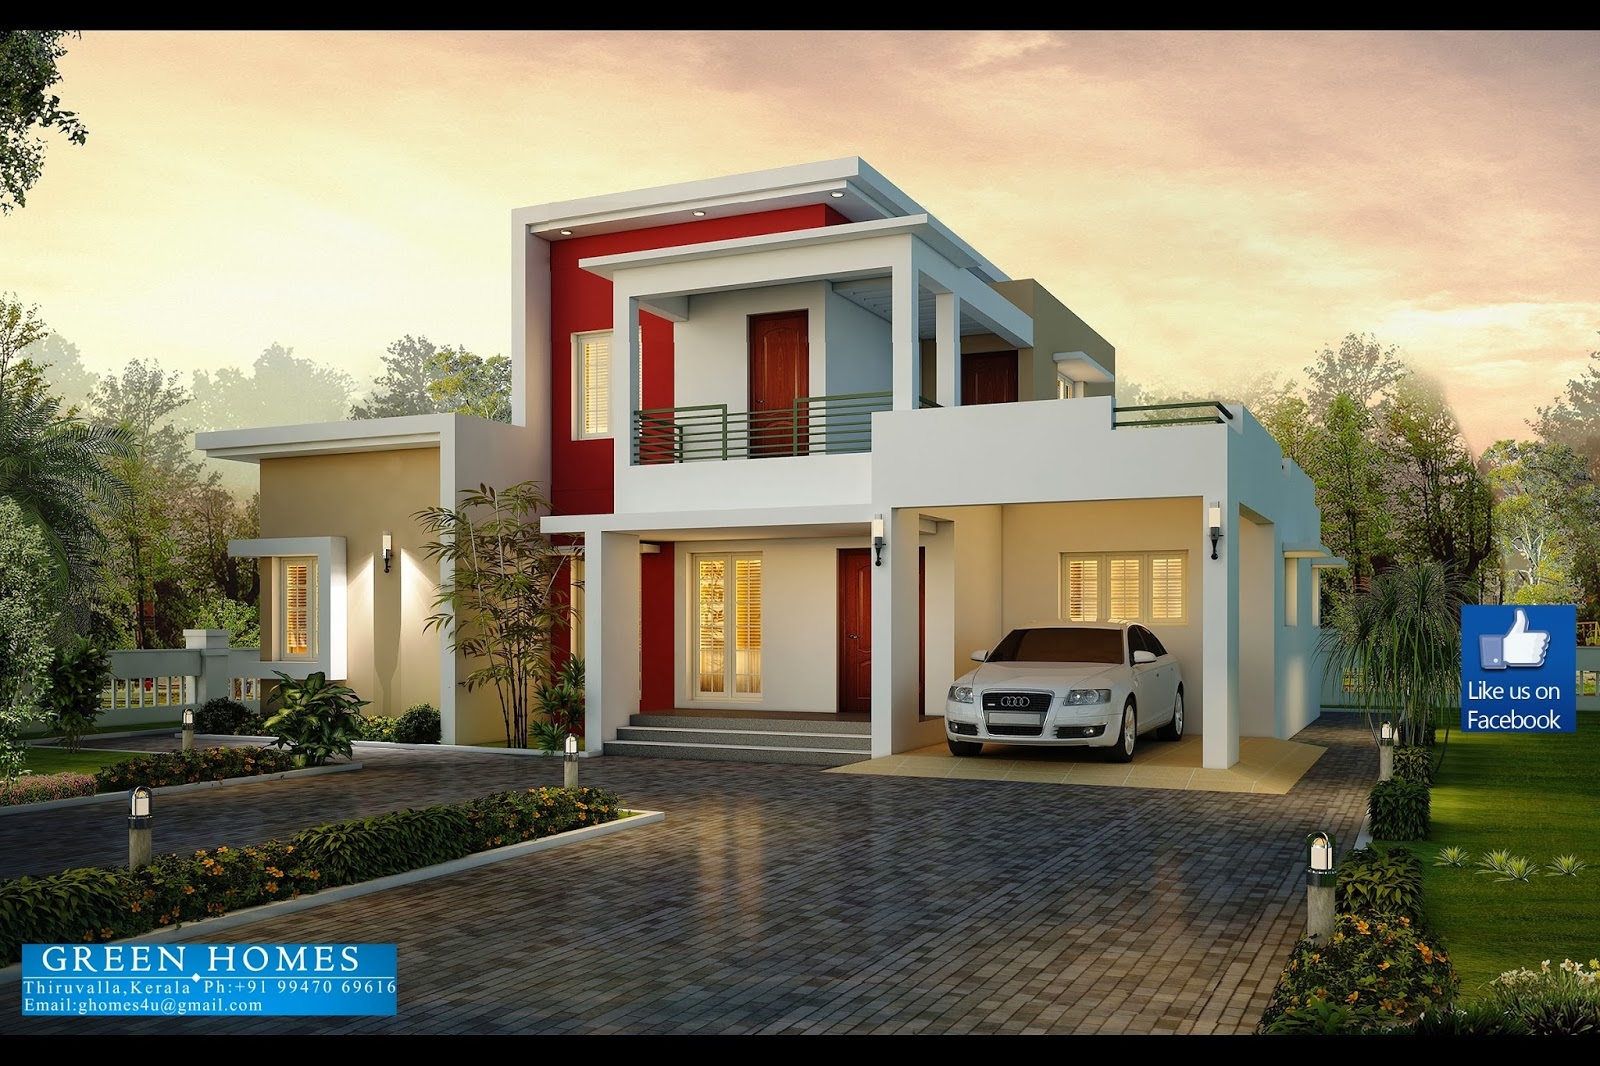 green+homes+construction,Thiruvalla - Download Modern 3 Bedroom House Plans With Photos  Pics